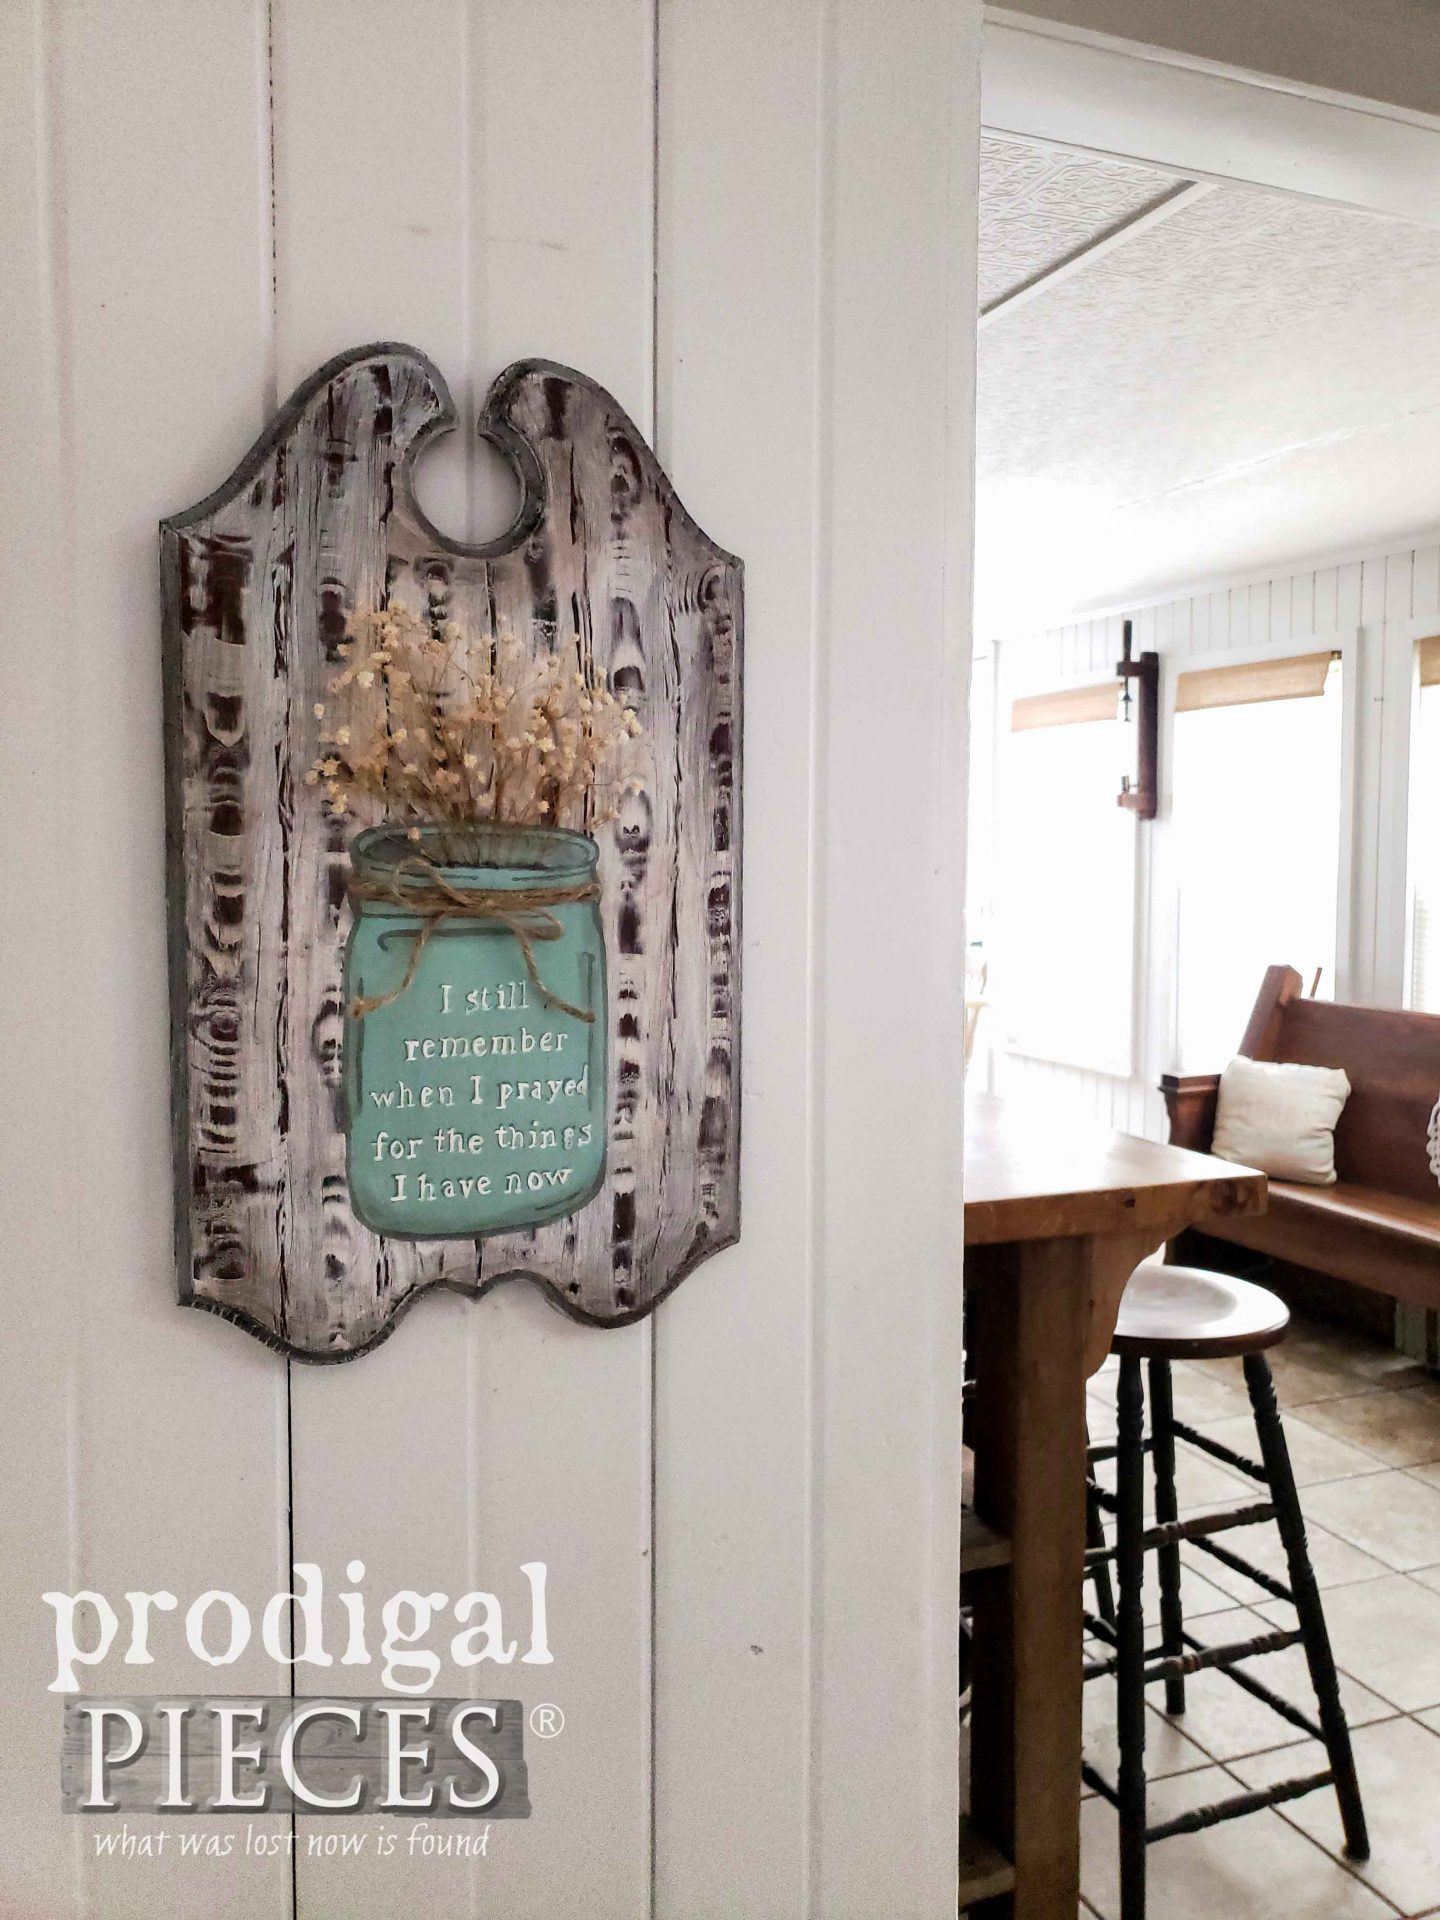 Handmade Farmhouse Blessings Sign by Larissa of Prodigal Pieces | prodigalpieces.com #prodigalpieces #diy #home #farmhouse #homedecor #diy